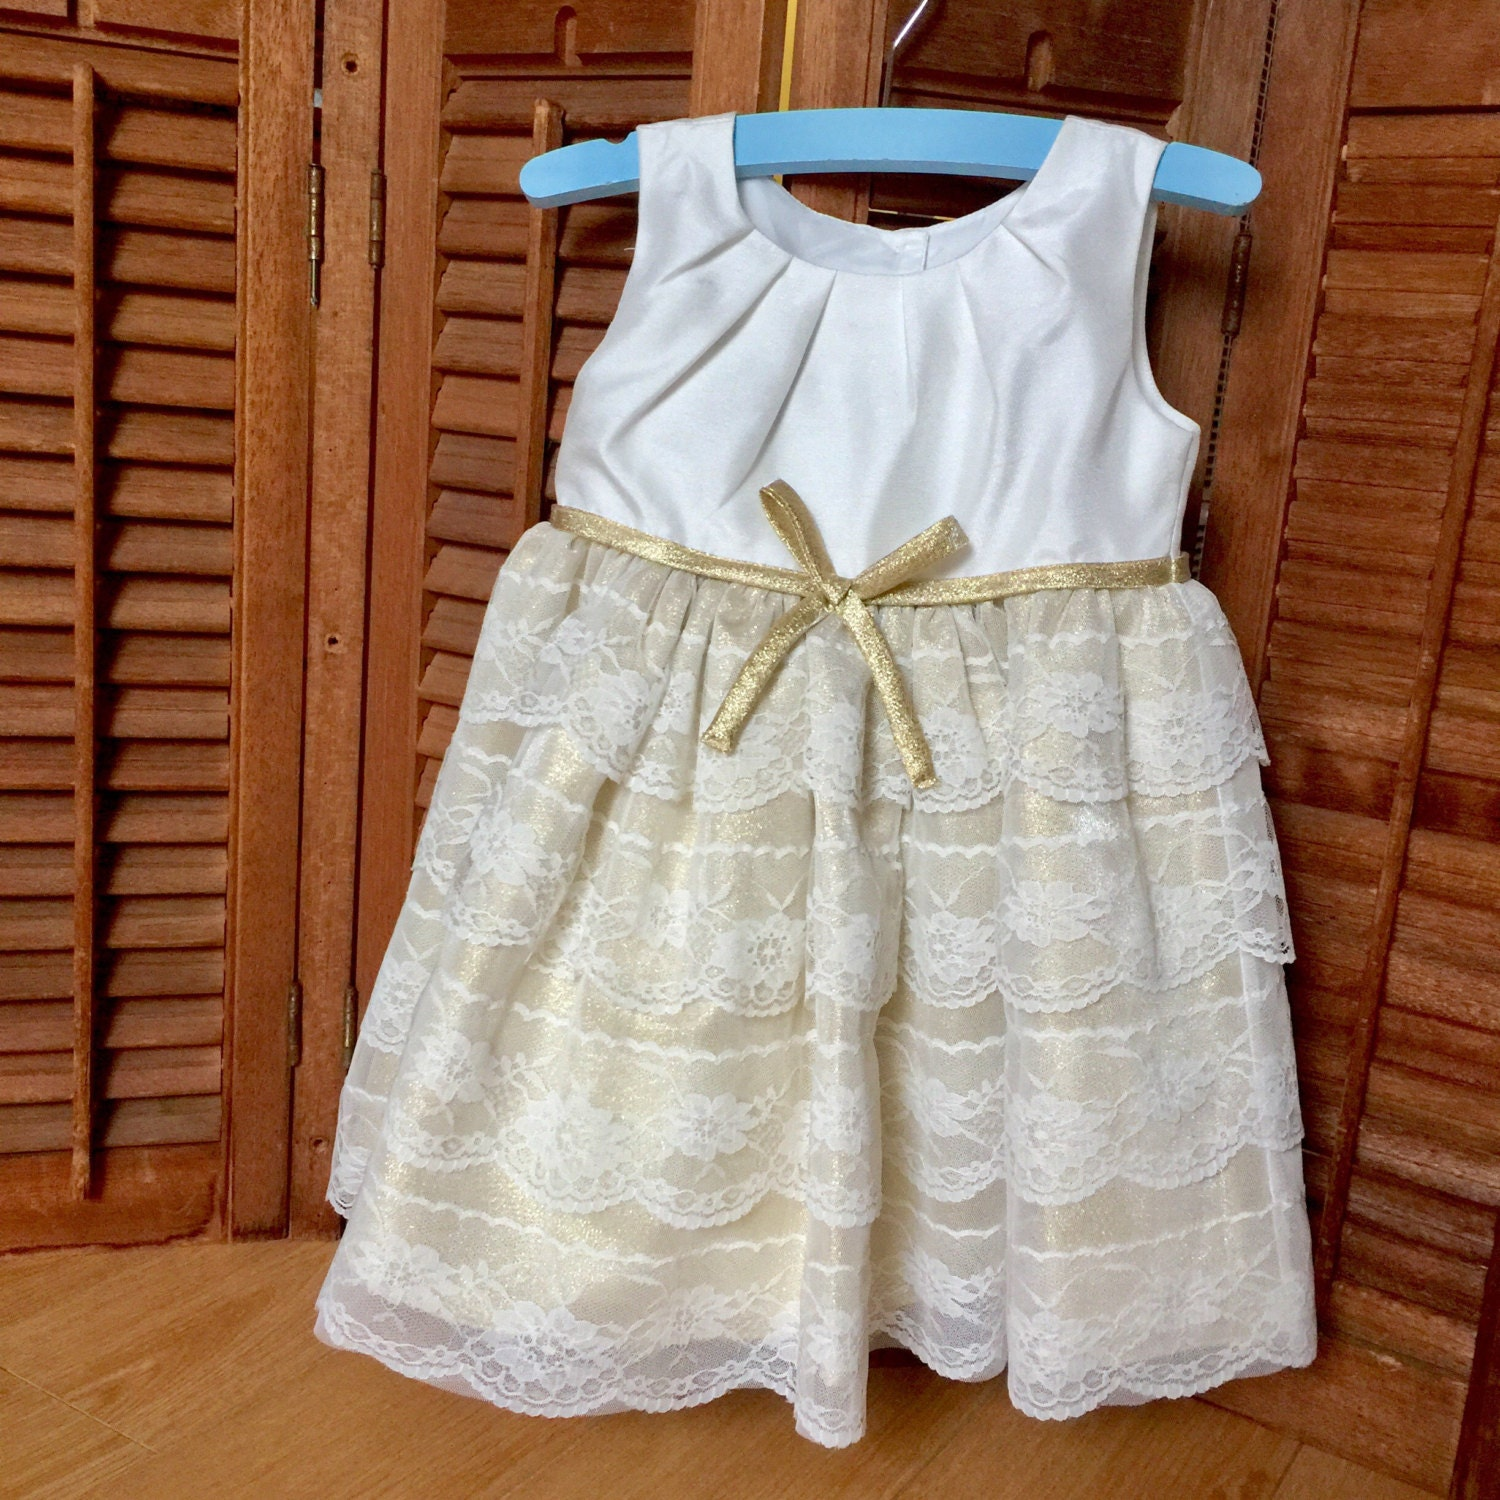 Gold Shimmery Lace Baby Dress Baptism Gown Toddler White Flower Girl